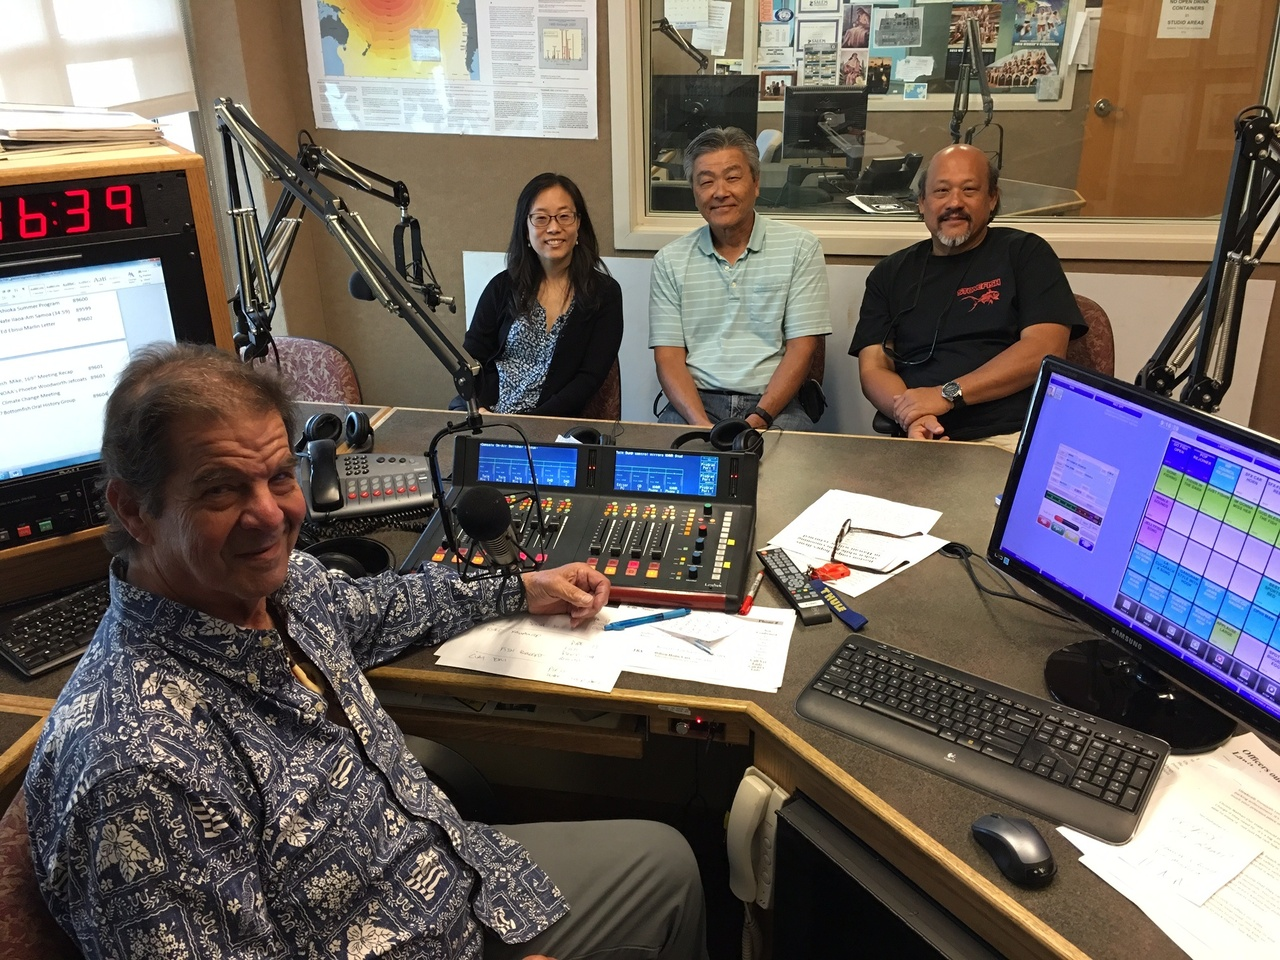 Kirsten Leong NOAA Social Scientist, Kurt Kawamoto NOAA Fishery Biologist, and Clay Tam Pacific Islands Fisheries Group in the studio with Mike Buck.